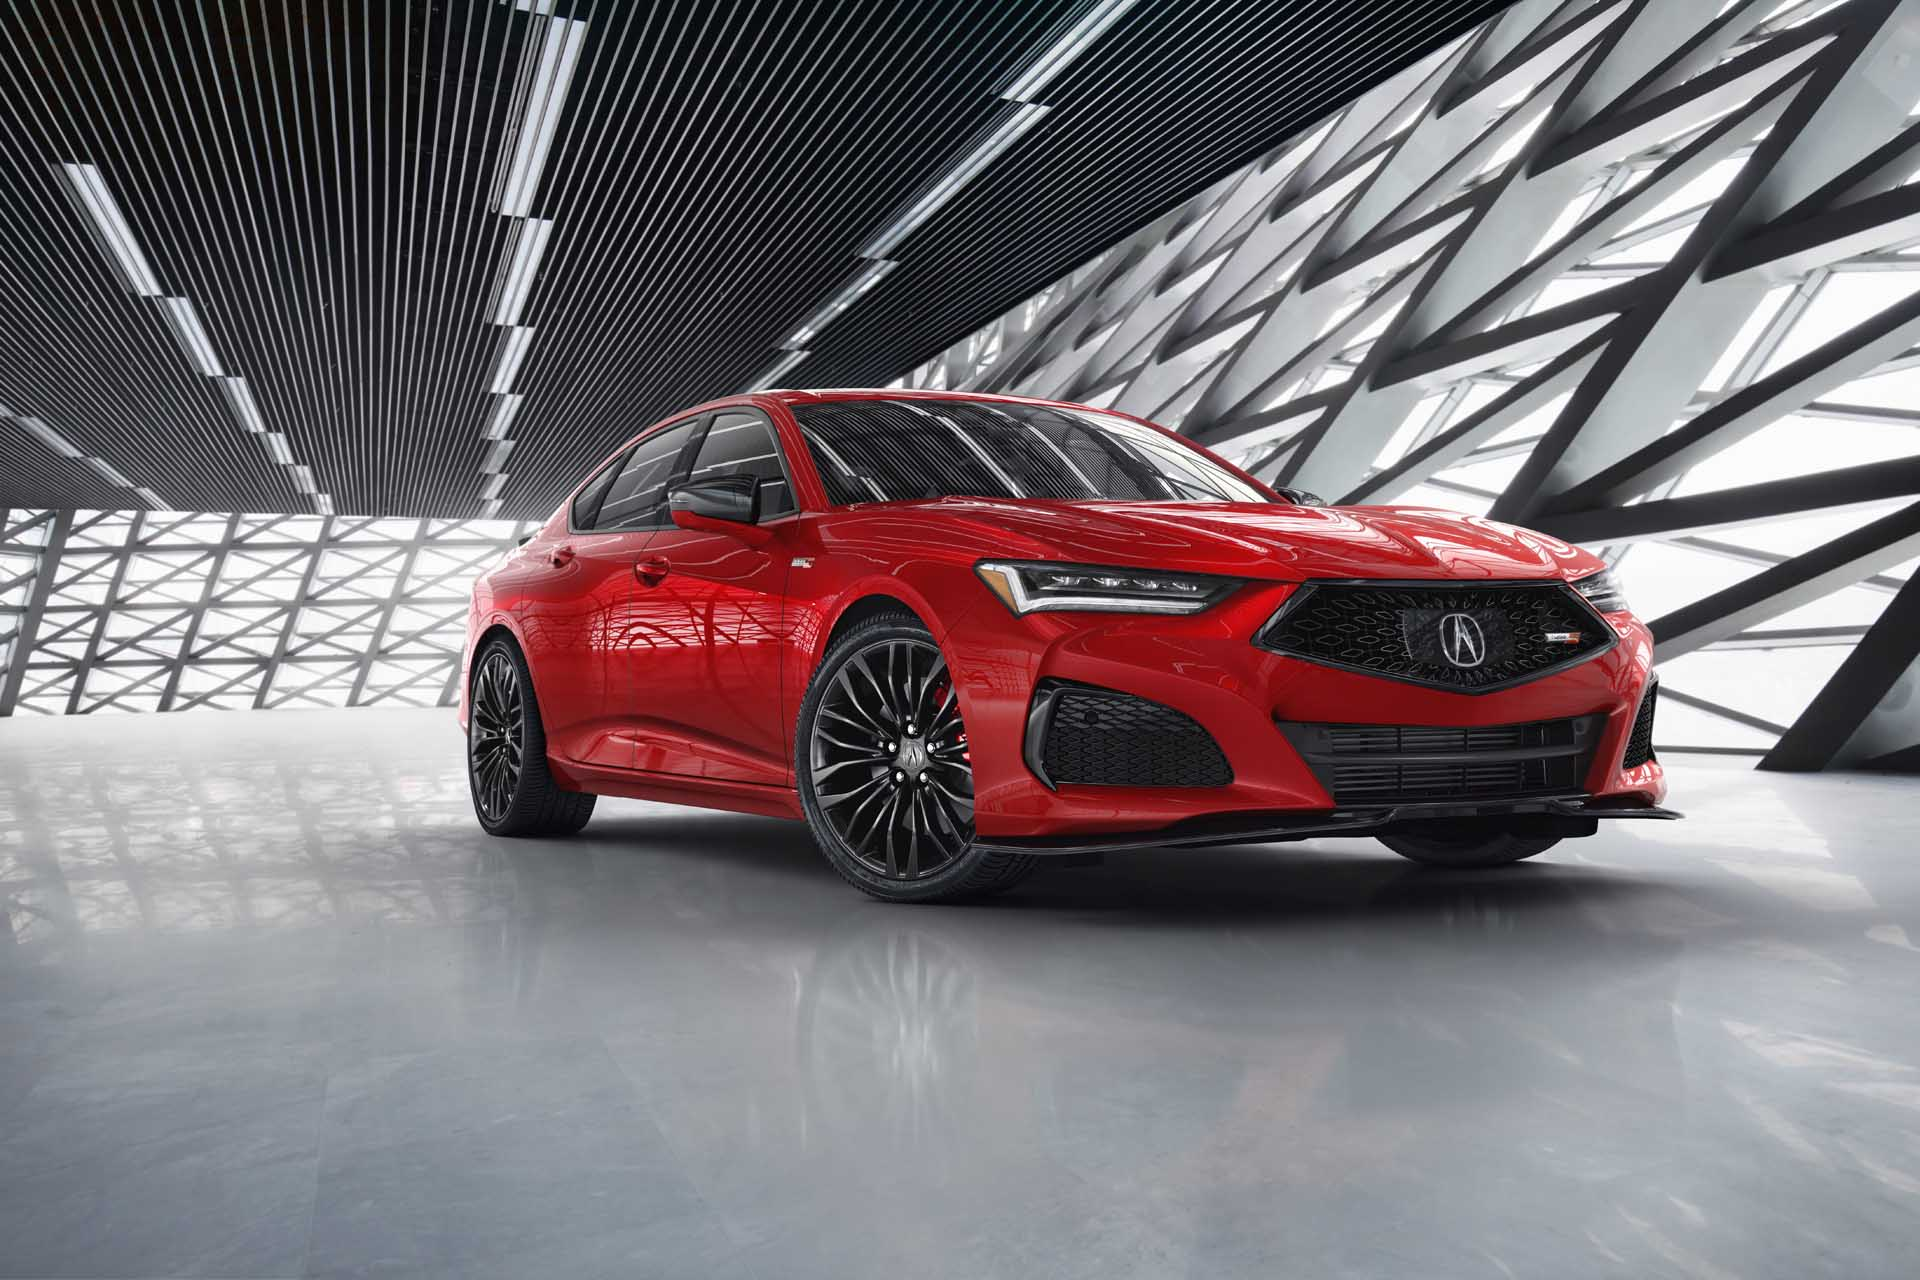 2021 Acura TLX challenges what we thought we knew about sedans 1920x1280